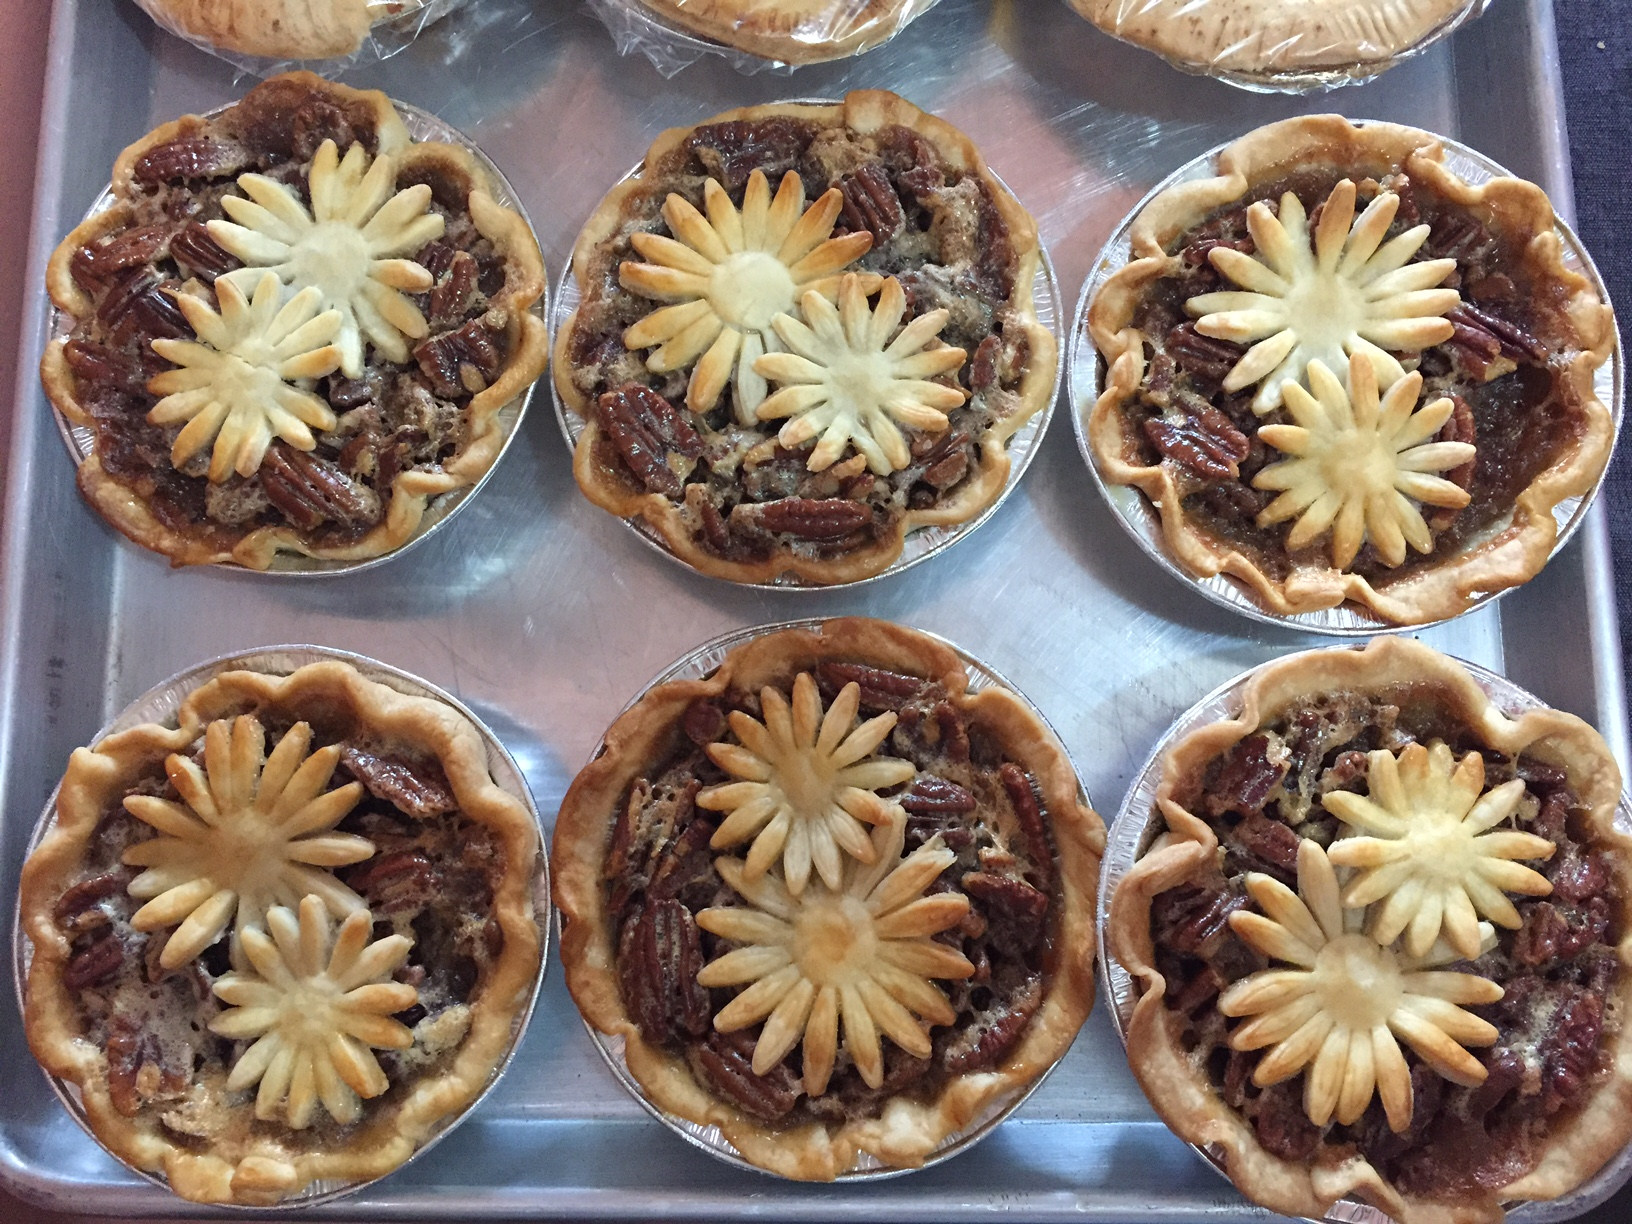 Maple Pecan Pies